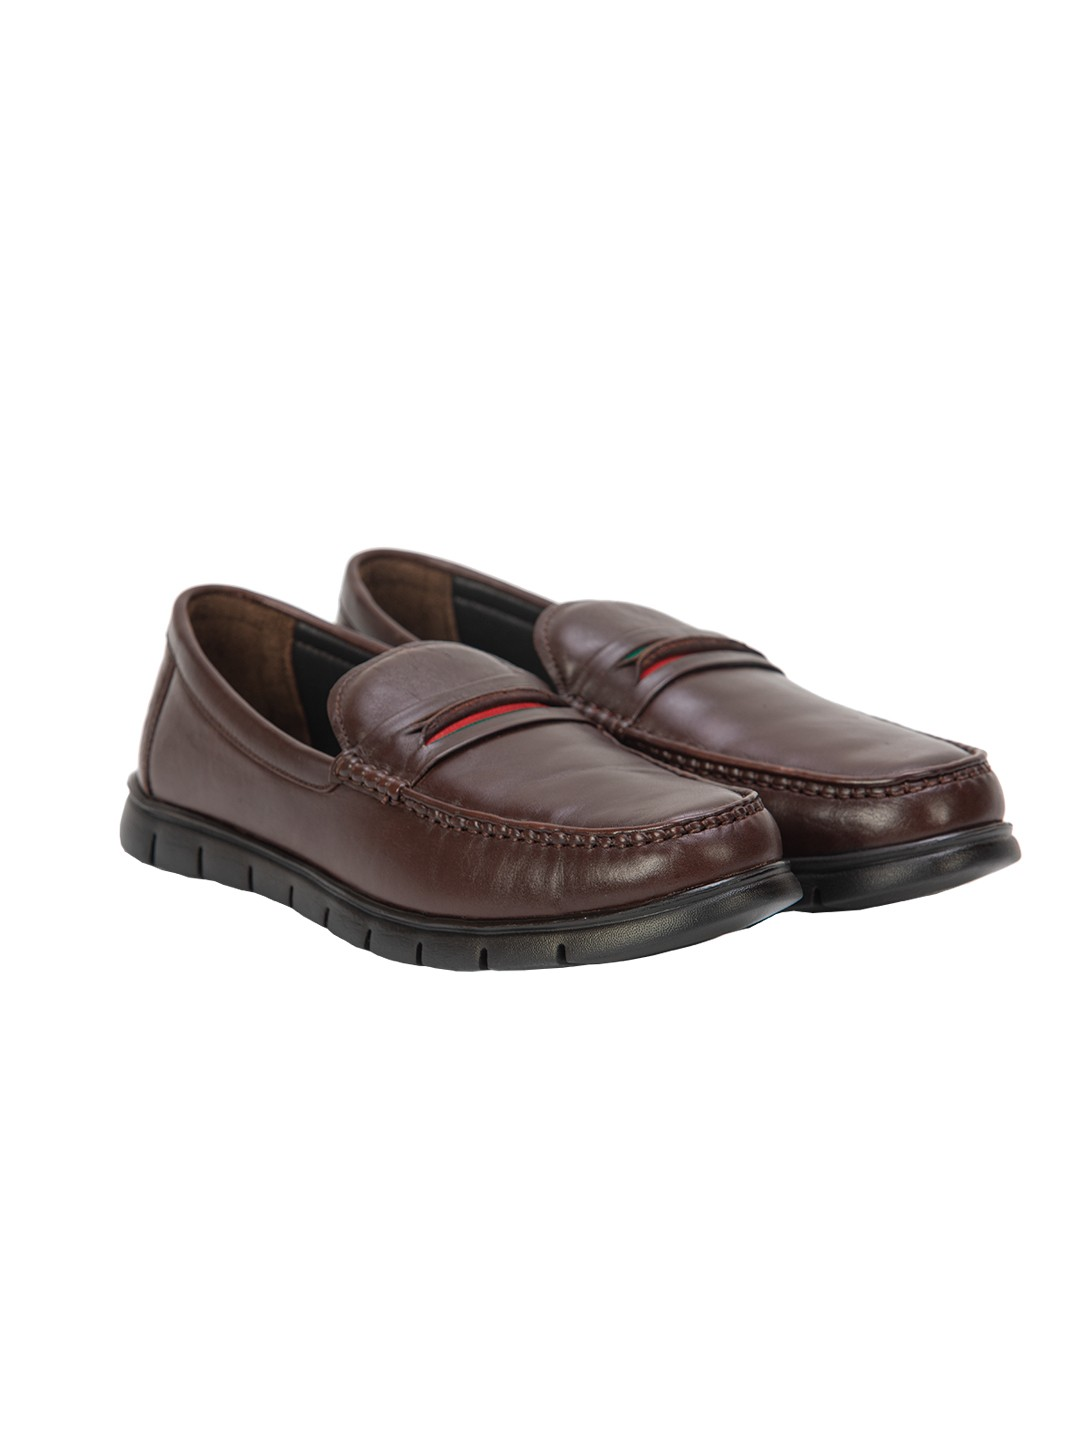 Buy Von Wellx Germany Comfort Brown Rhett Shoes Online in Kandy